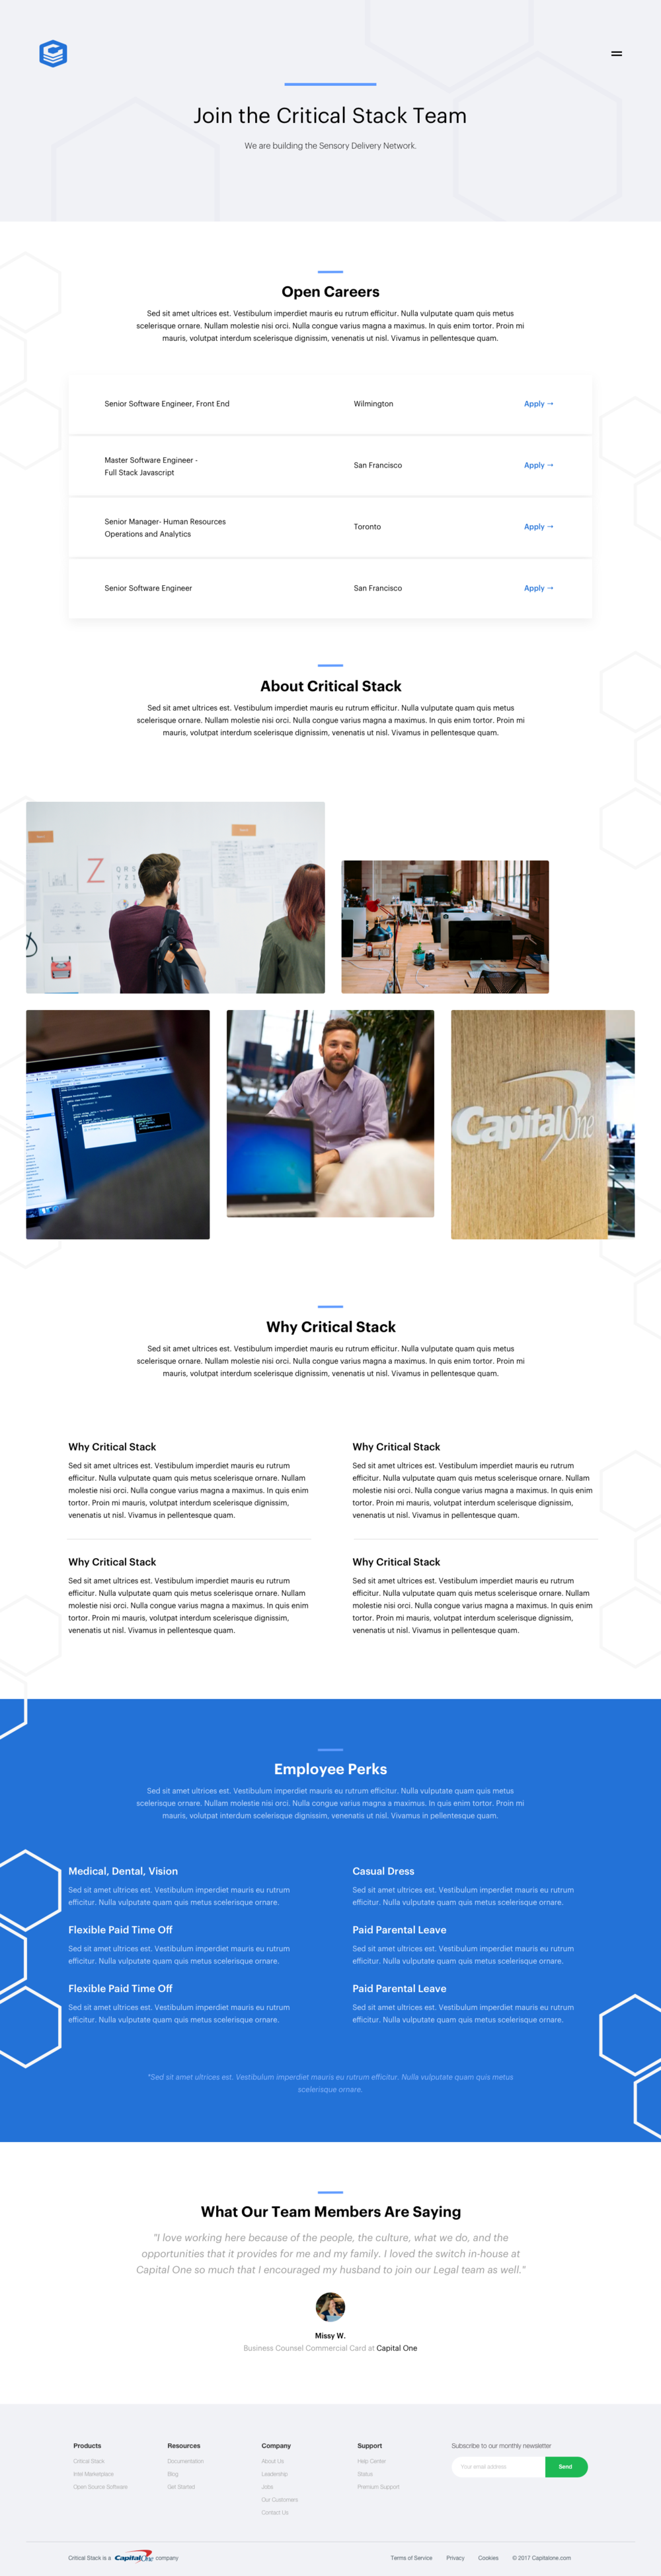 Jobs Page: Expanded Version